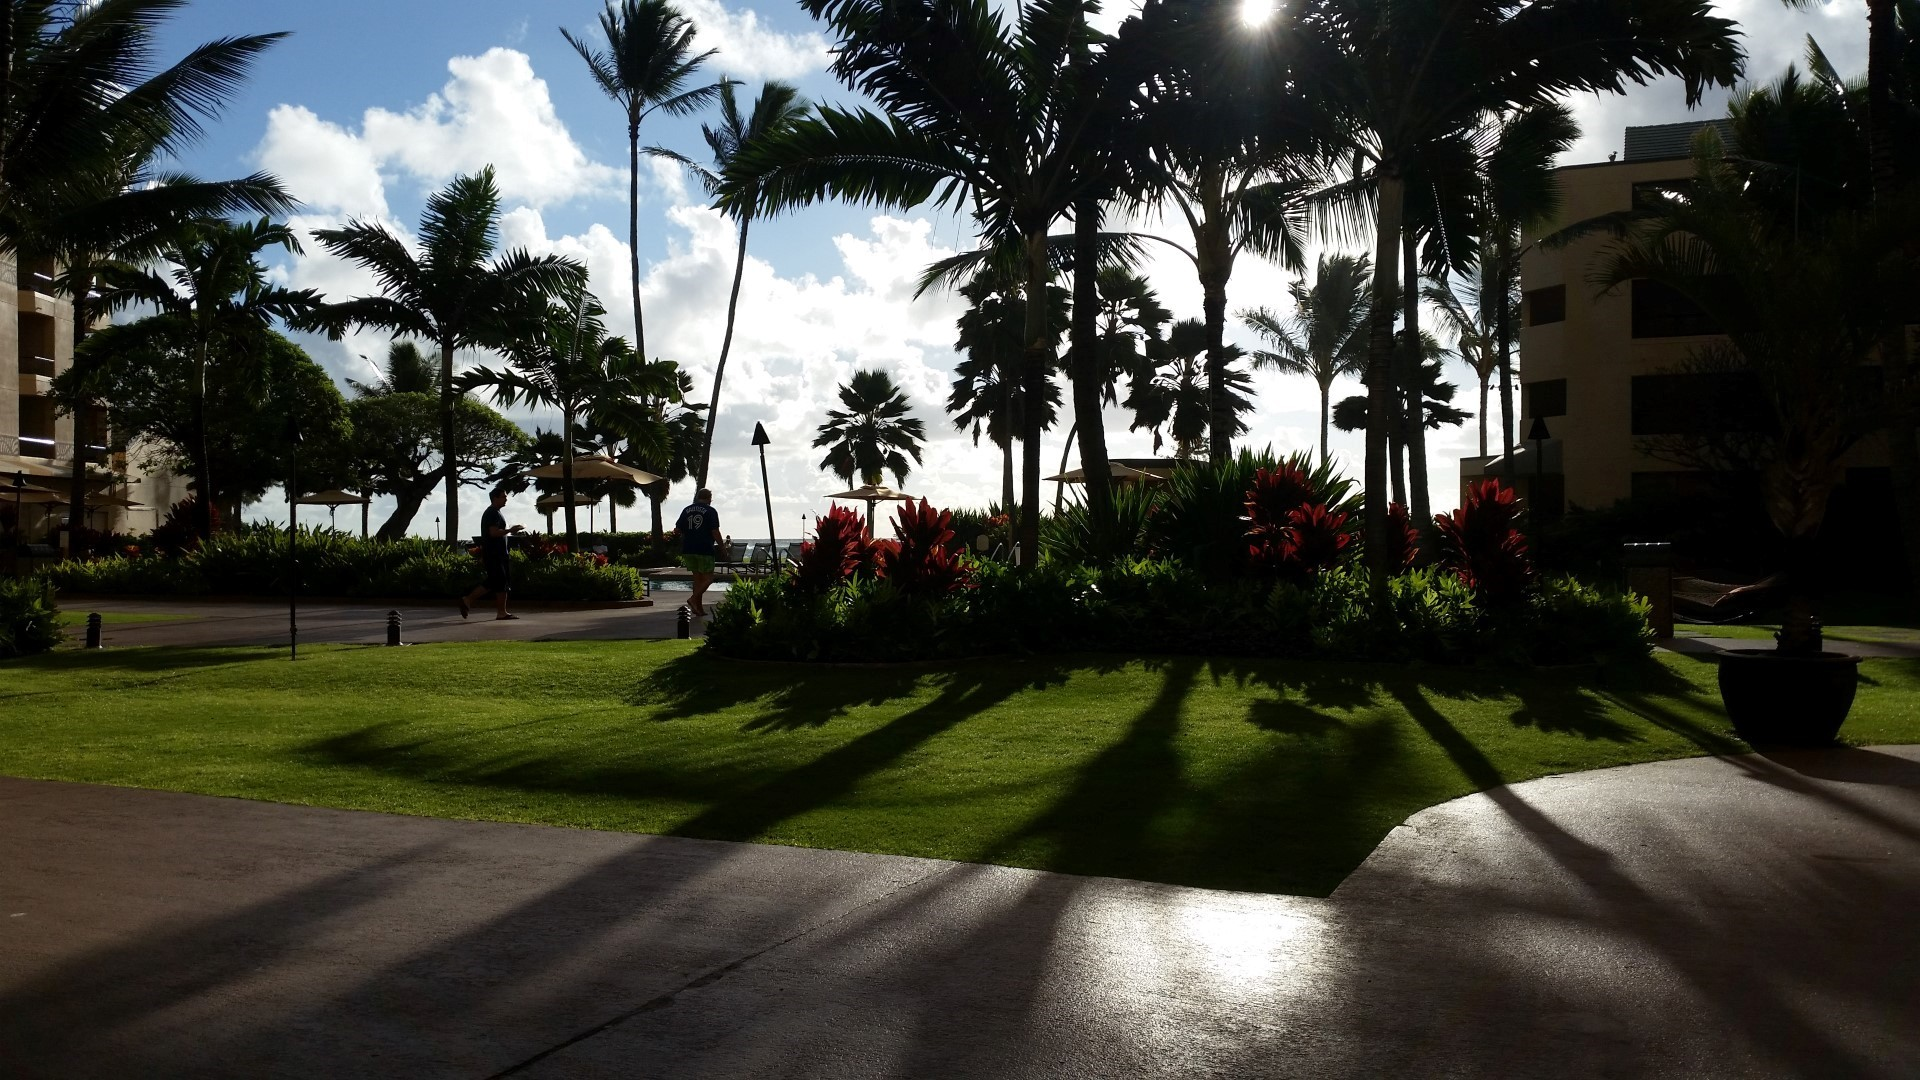 Hawaii Tag 35: Marriott Kauai, Lihue, Seattle (2014-10-30)